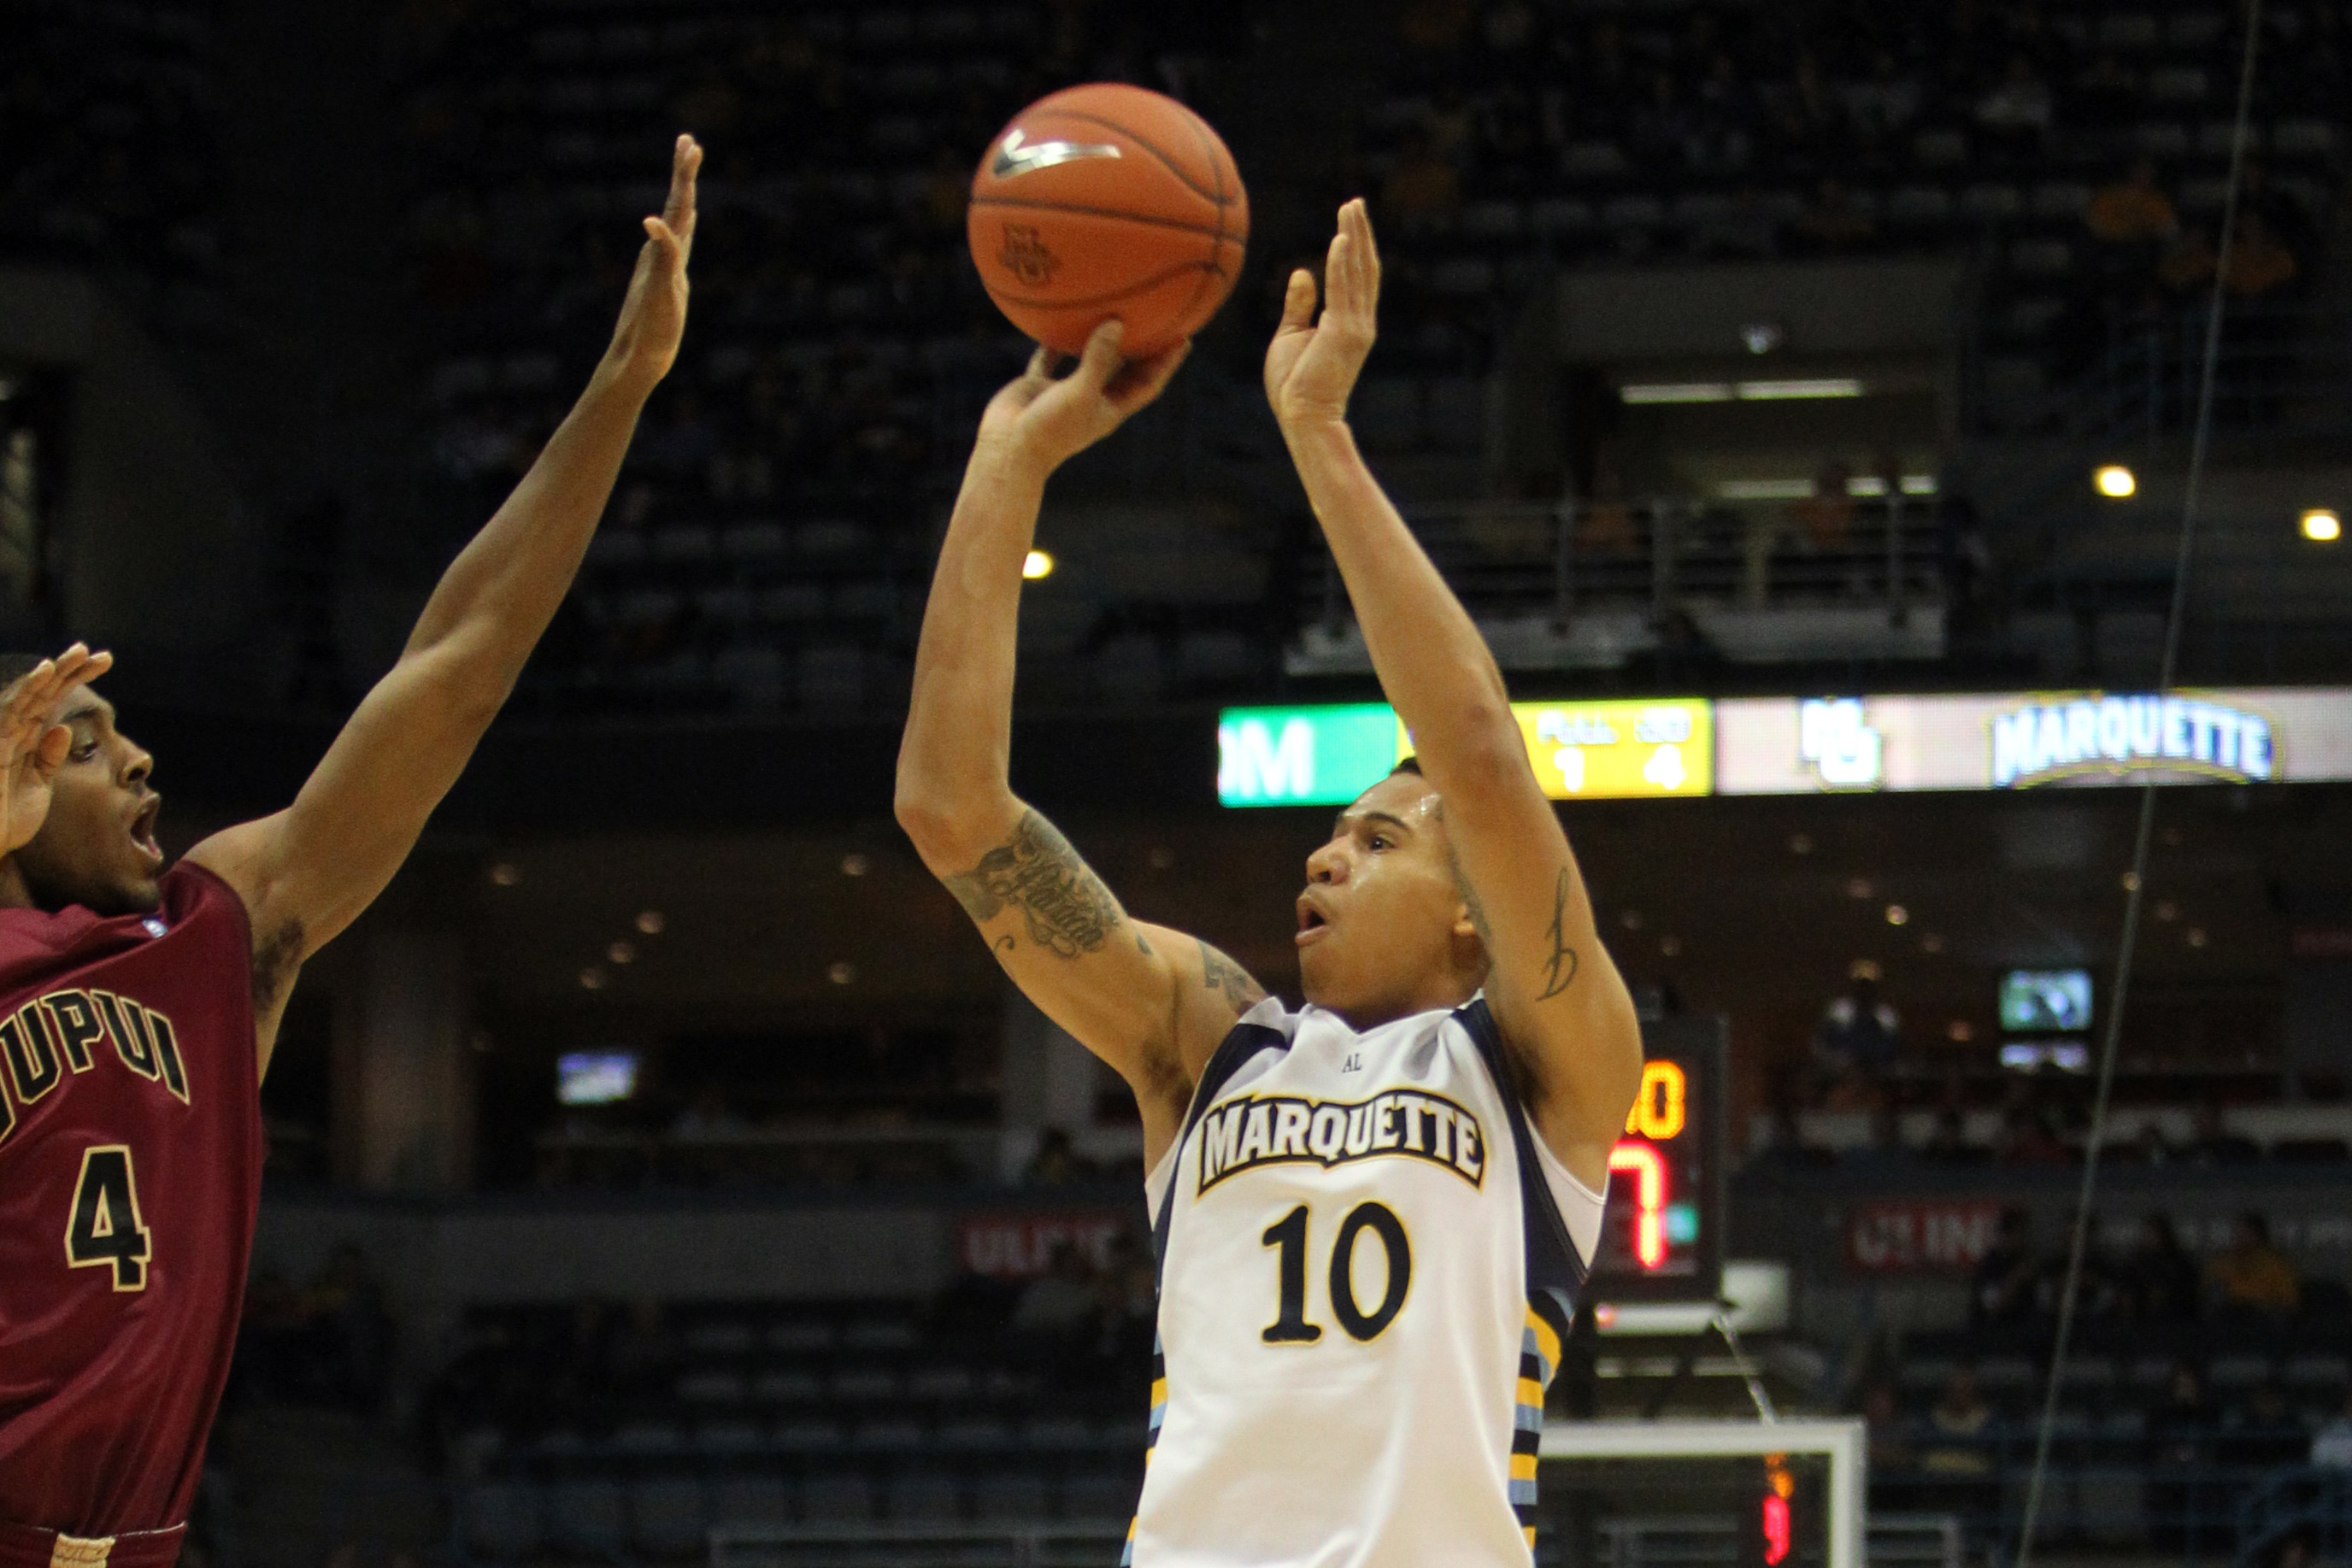 Juan Anderson knocks down one of his three first-half 3-pointers en route to an 11-point effort vs. IUPUI